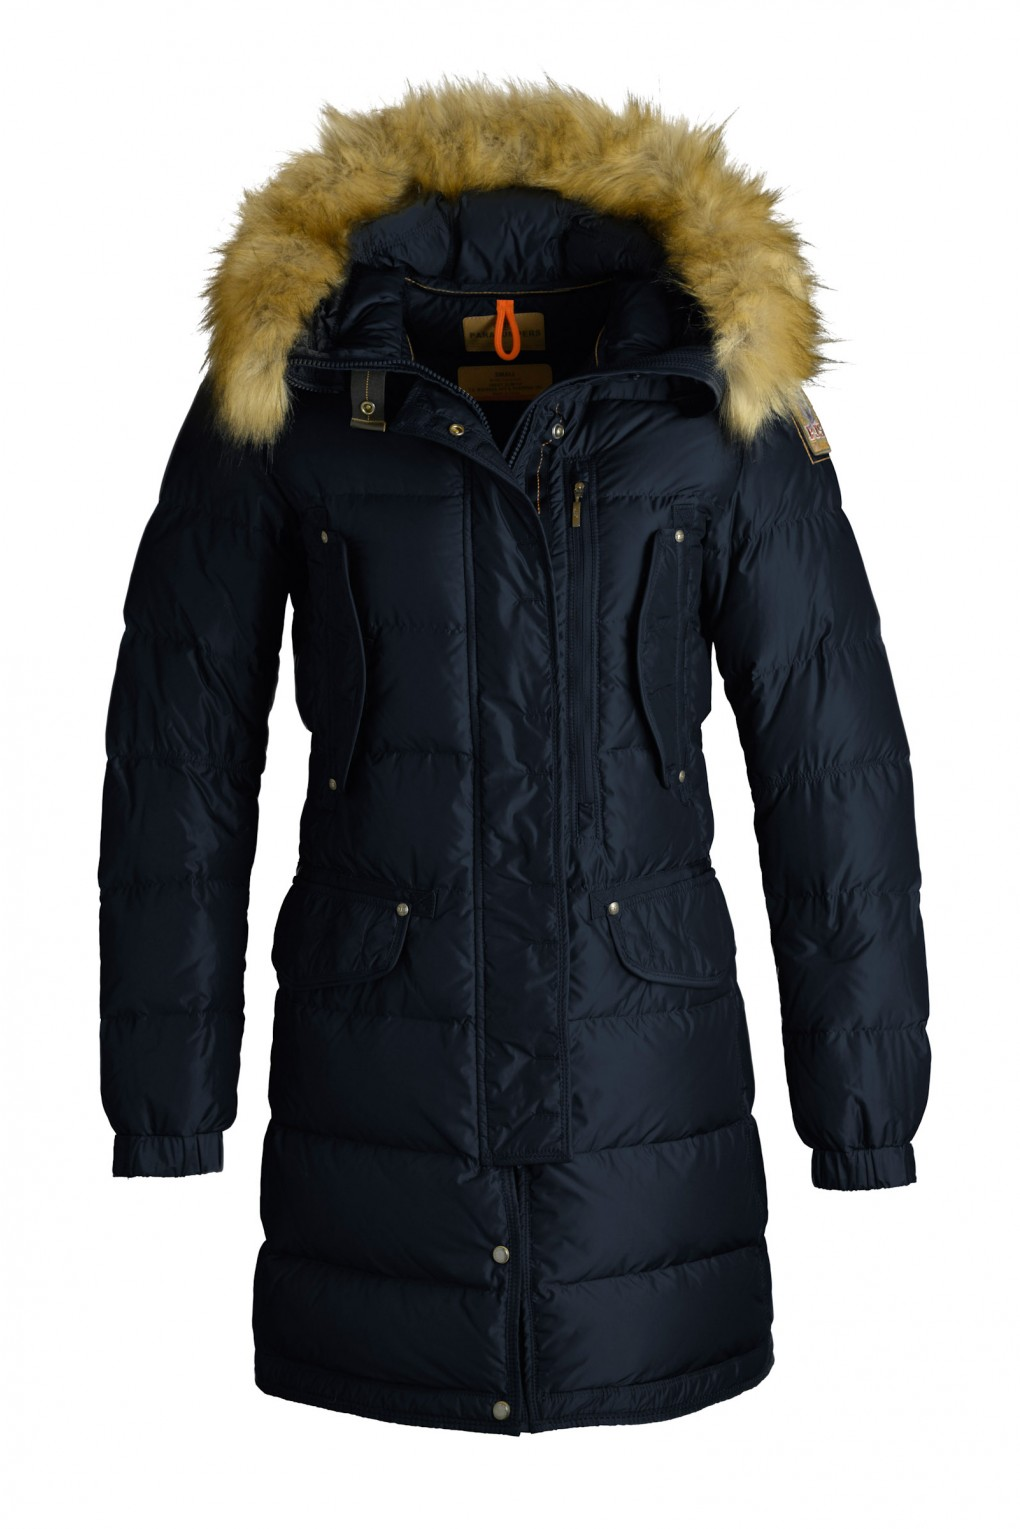 parajumpers HARRASEEKET ECO woman outerwear Navy